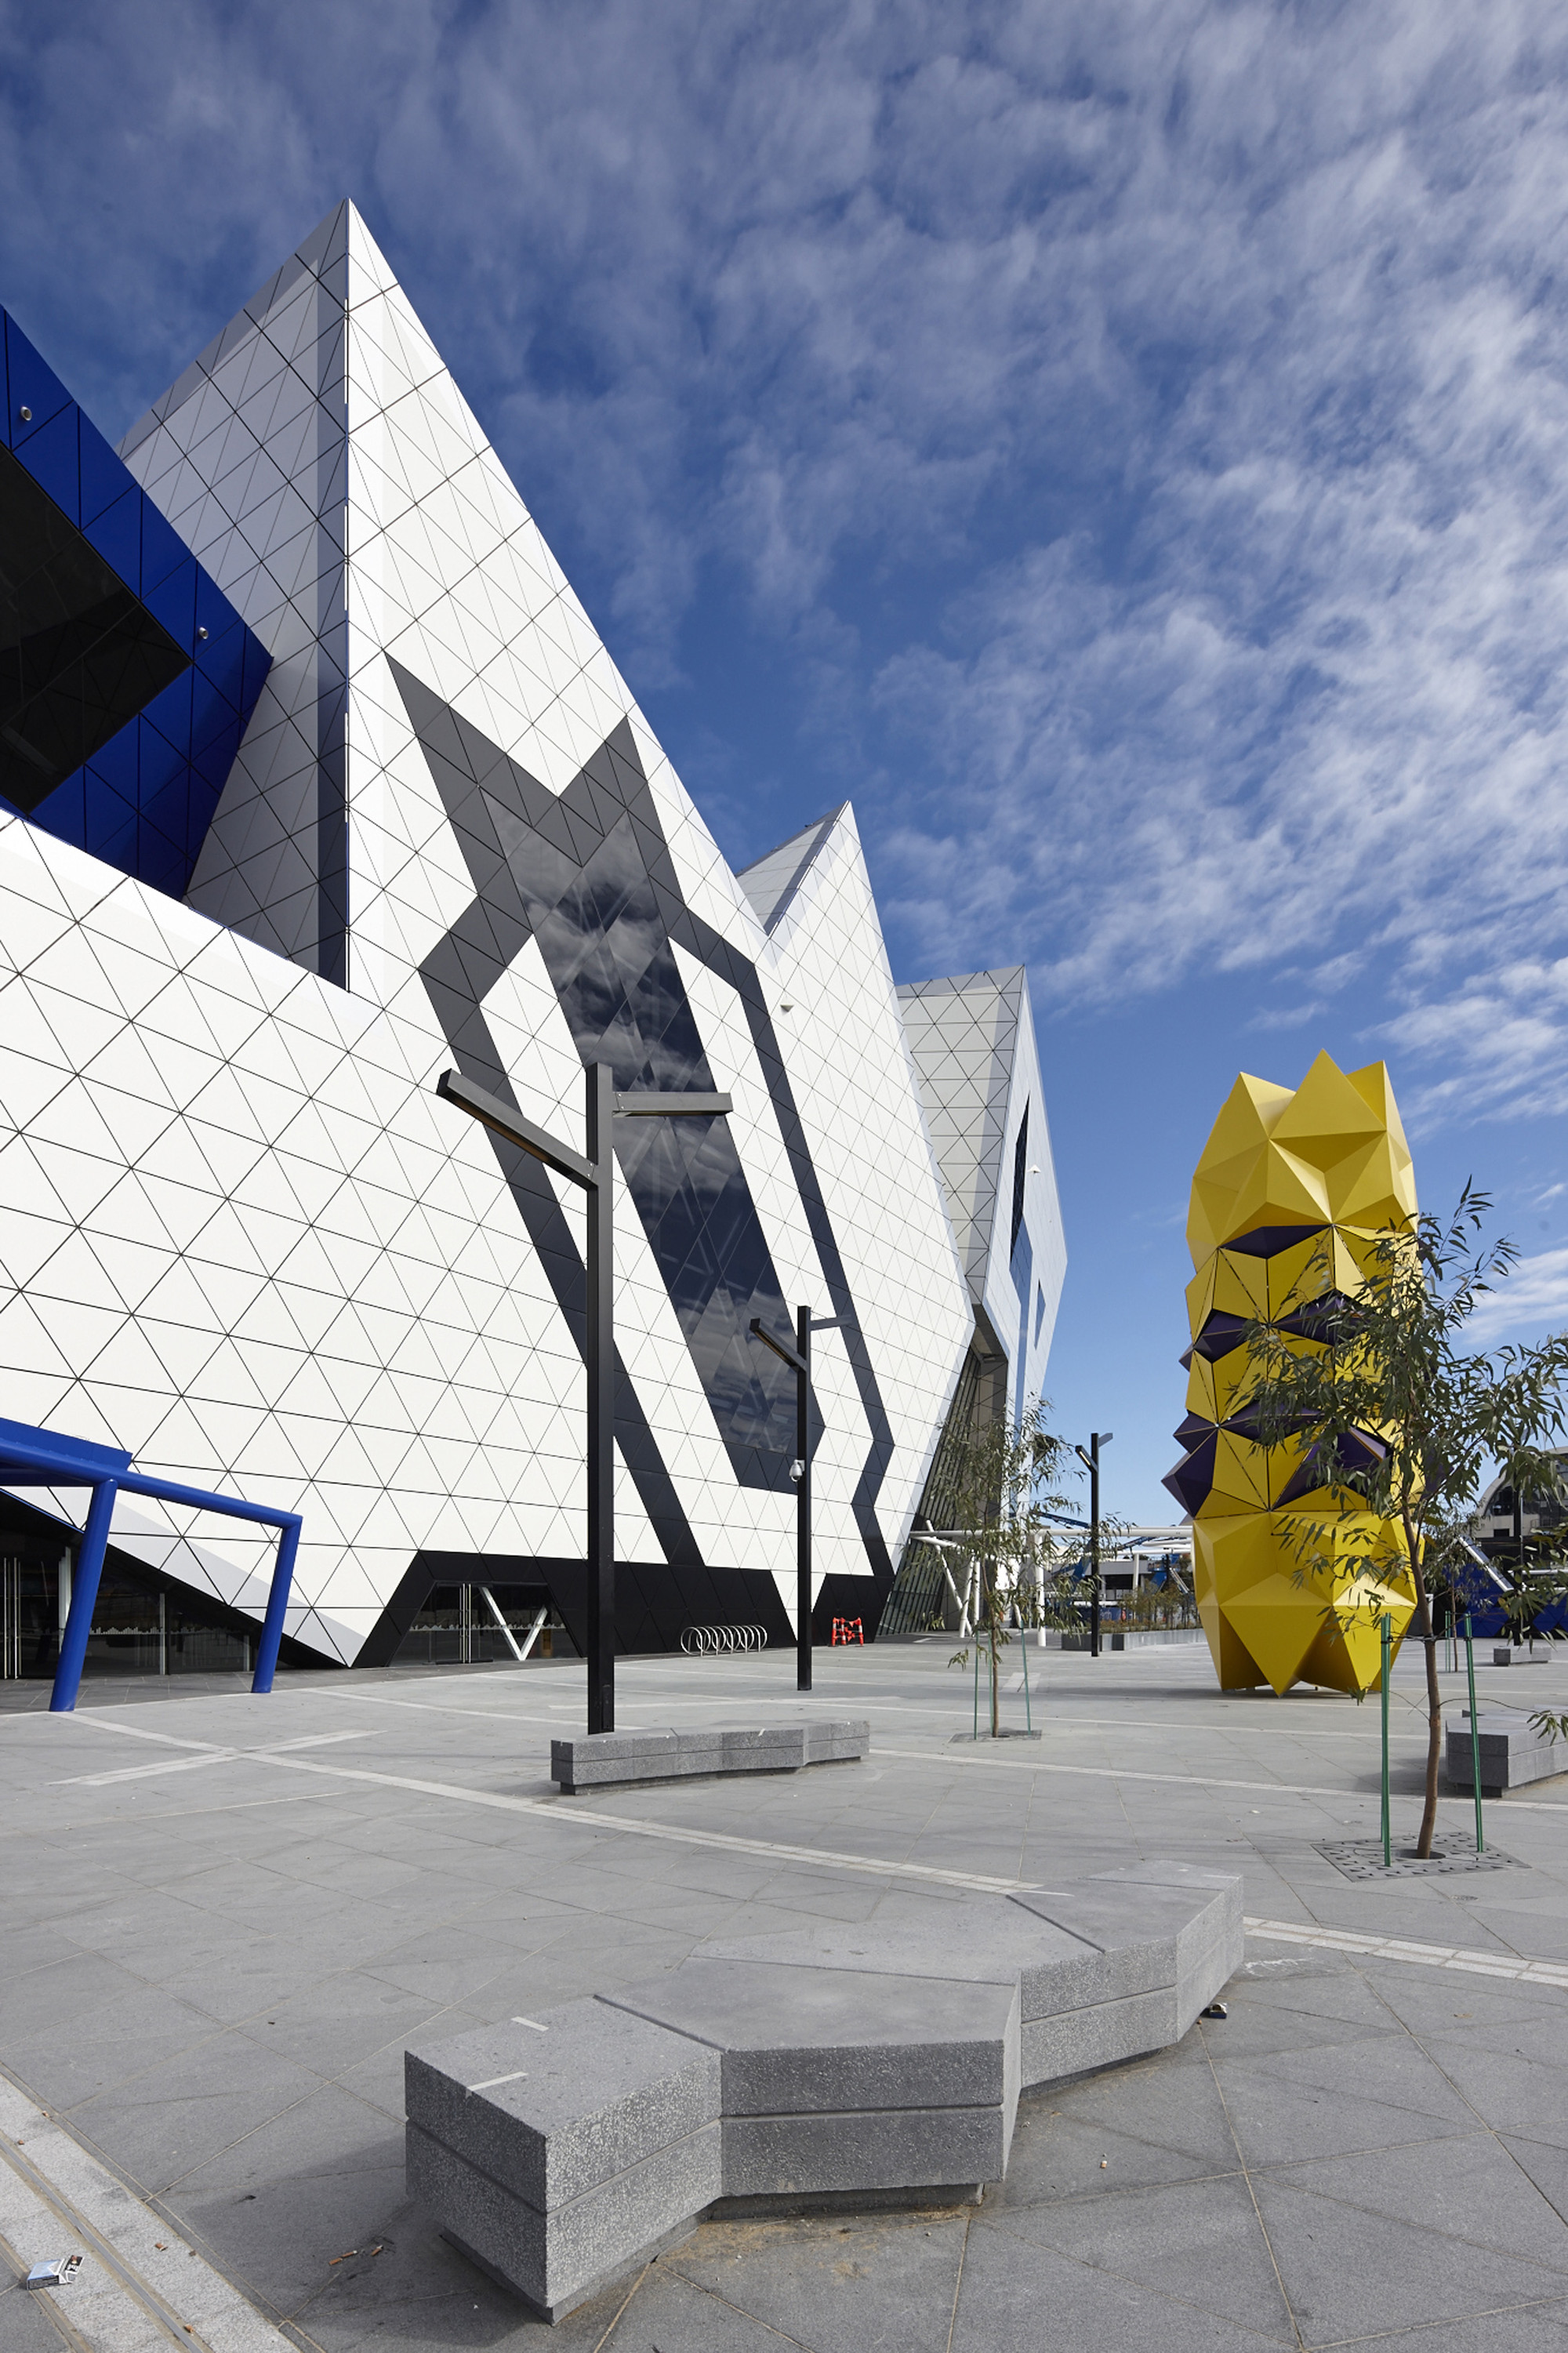 Gallery of perth arena arm architecture ccn 8 for Architecture firms perth